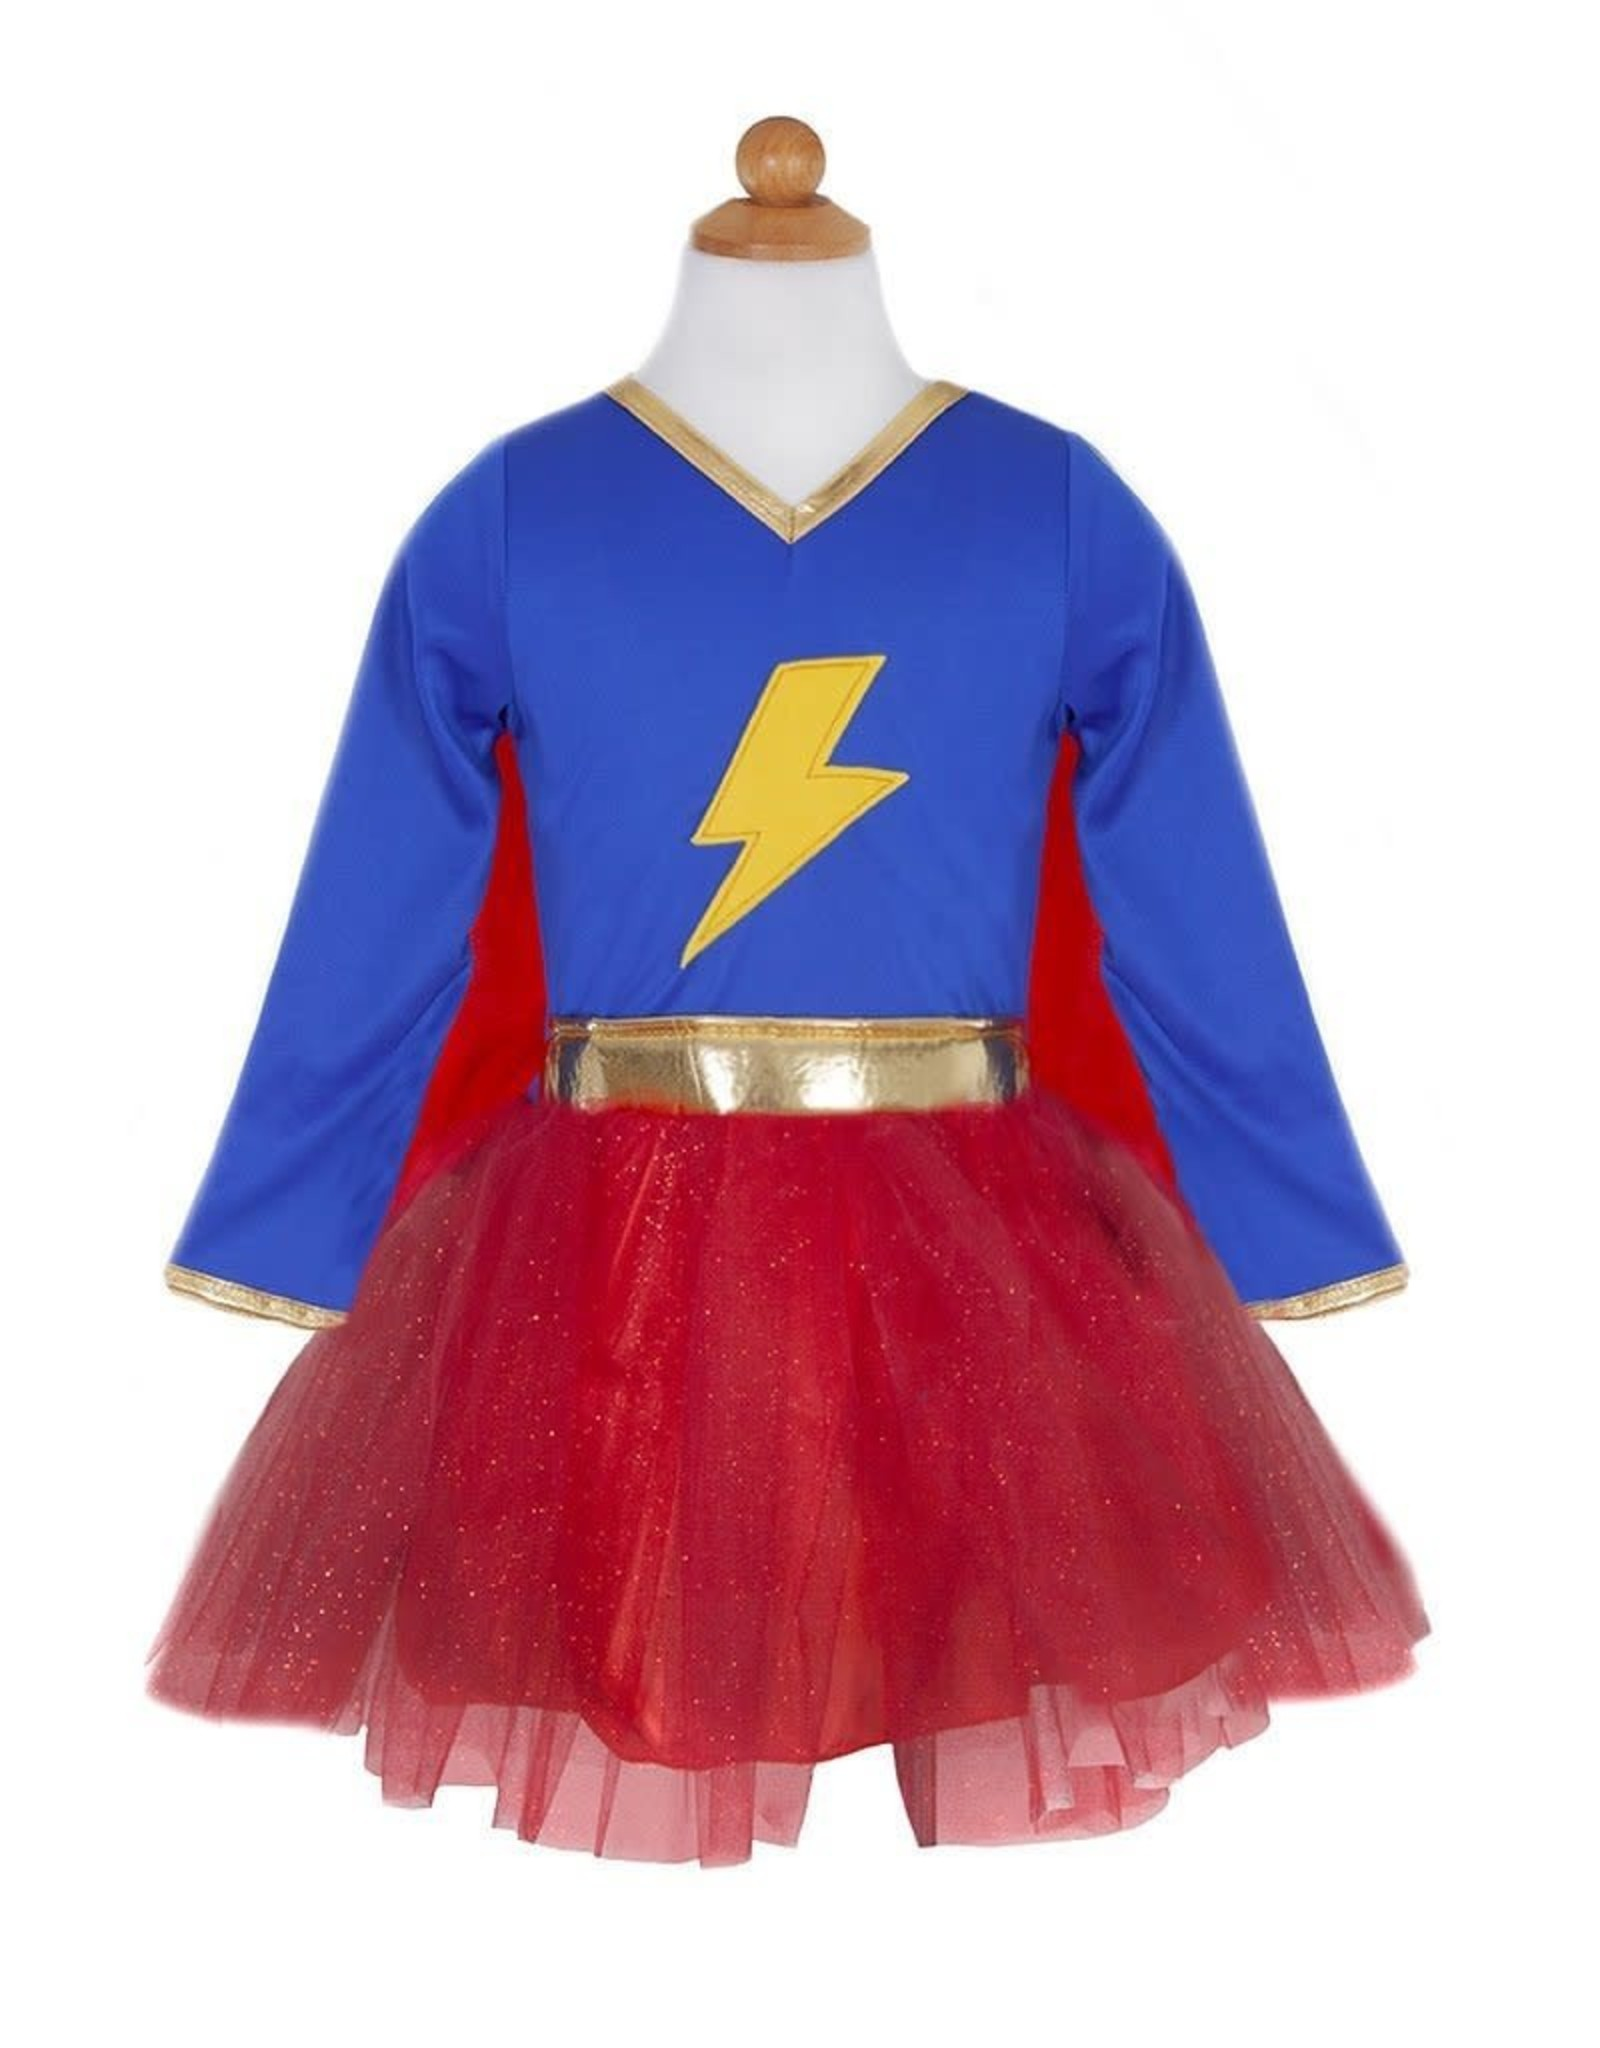 Great Pretenders Lightning Quick Adventure Chick Dress With Cape, Size 5-6